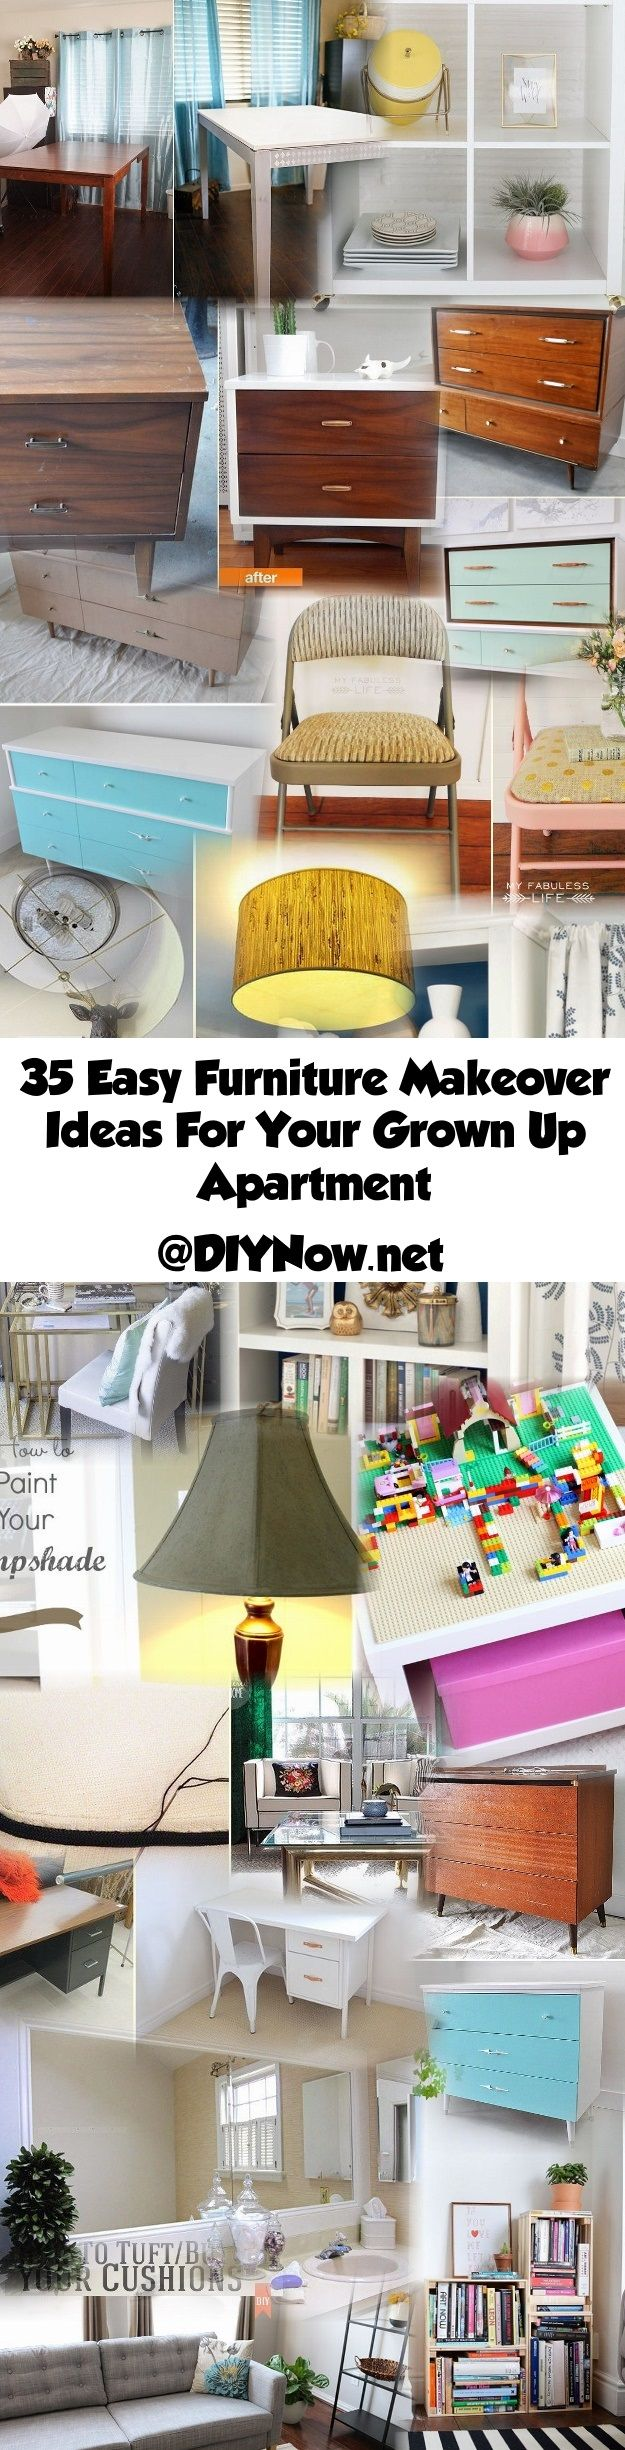 35 Easy Furniture Makeover Ideas For Your Grown Up Apartment